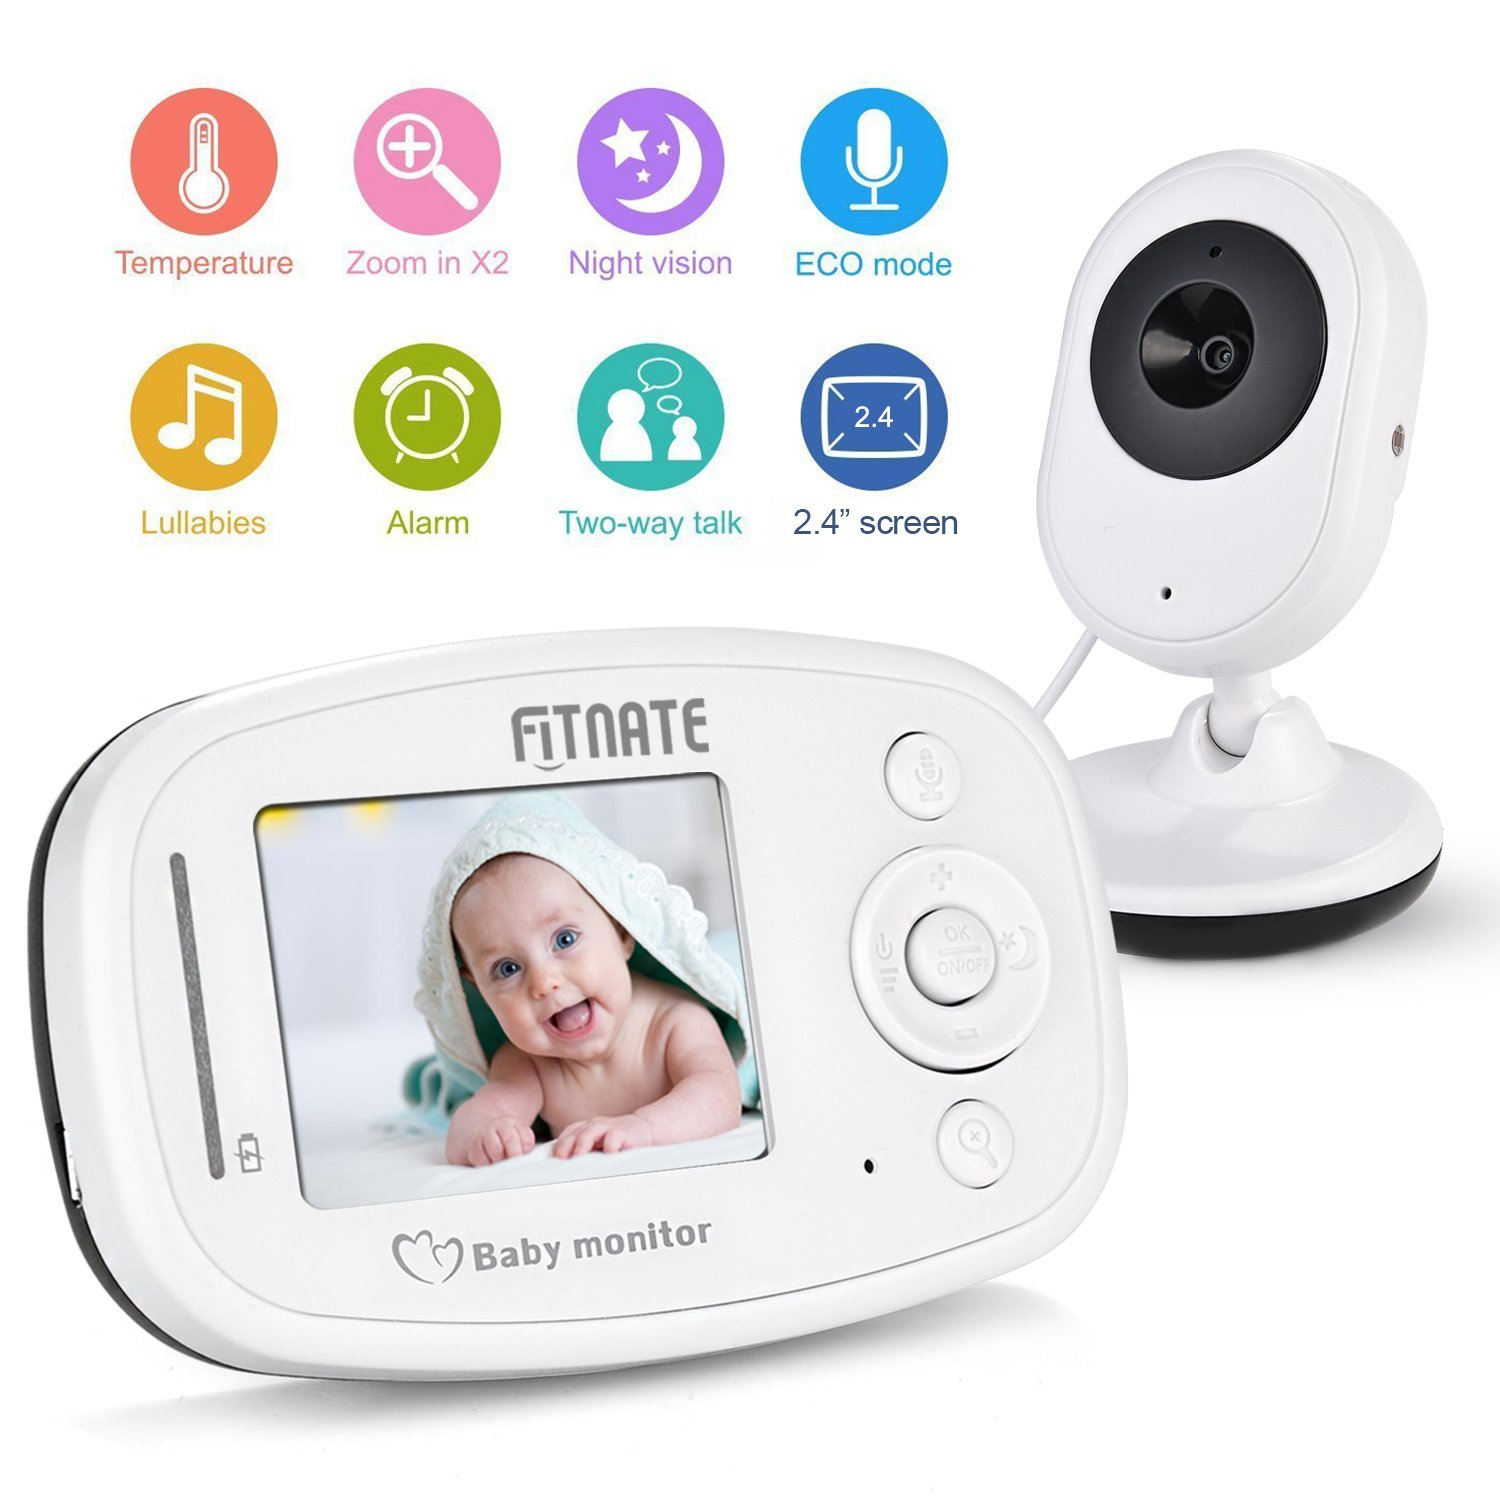 Video Baby Monitor, Fitnate Wireless Baby Monitor with Night Vision Digital Camera, Temperature Monitoring & 2 Way Talkback Audio, Built-in Remote Lullabies Soother System 2.4 inch Color LCD Screen